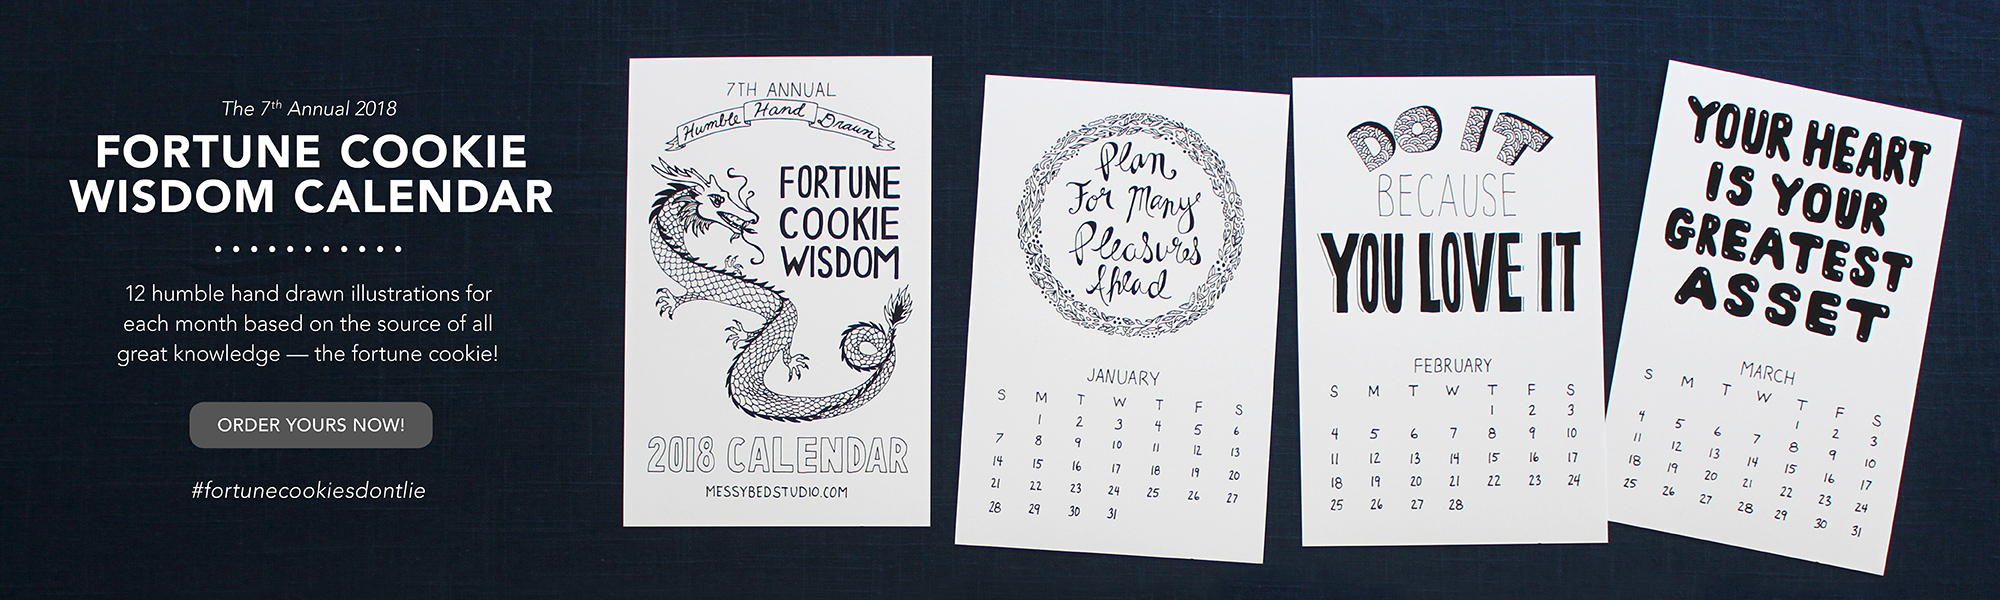 2018 humble hand drawn fortune cookie wisdom calendar